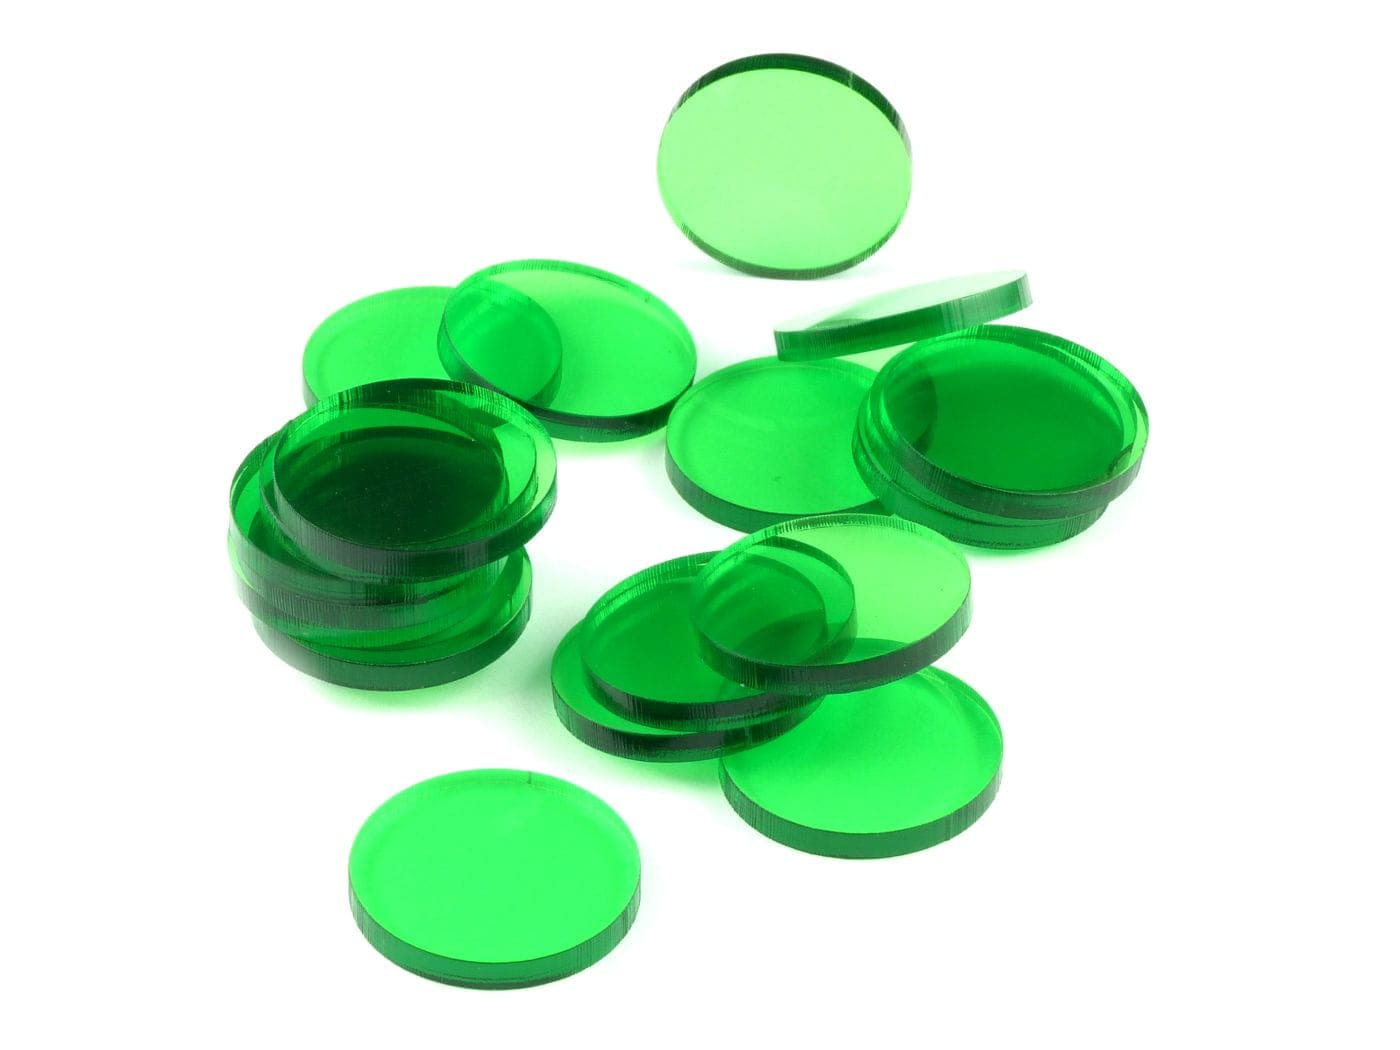 Acrylic miniature bases (20 pcs), round, clear, green, 25 x 3 mm - 1